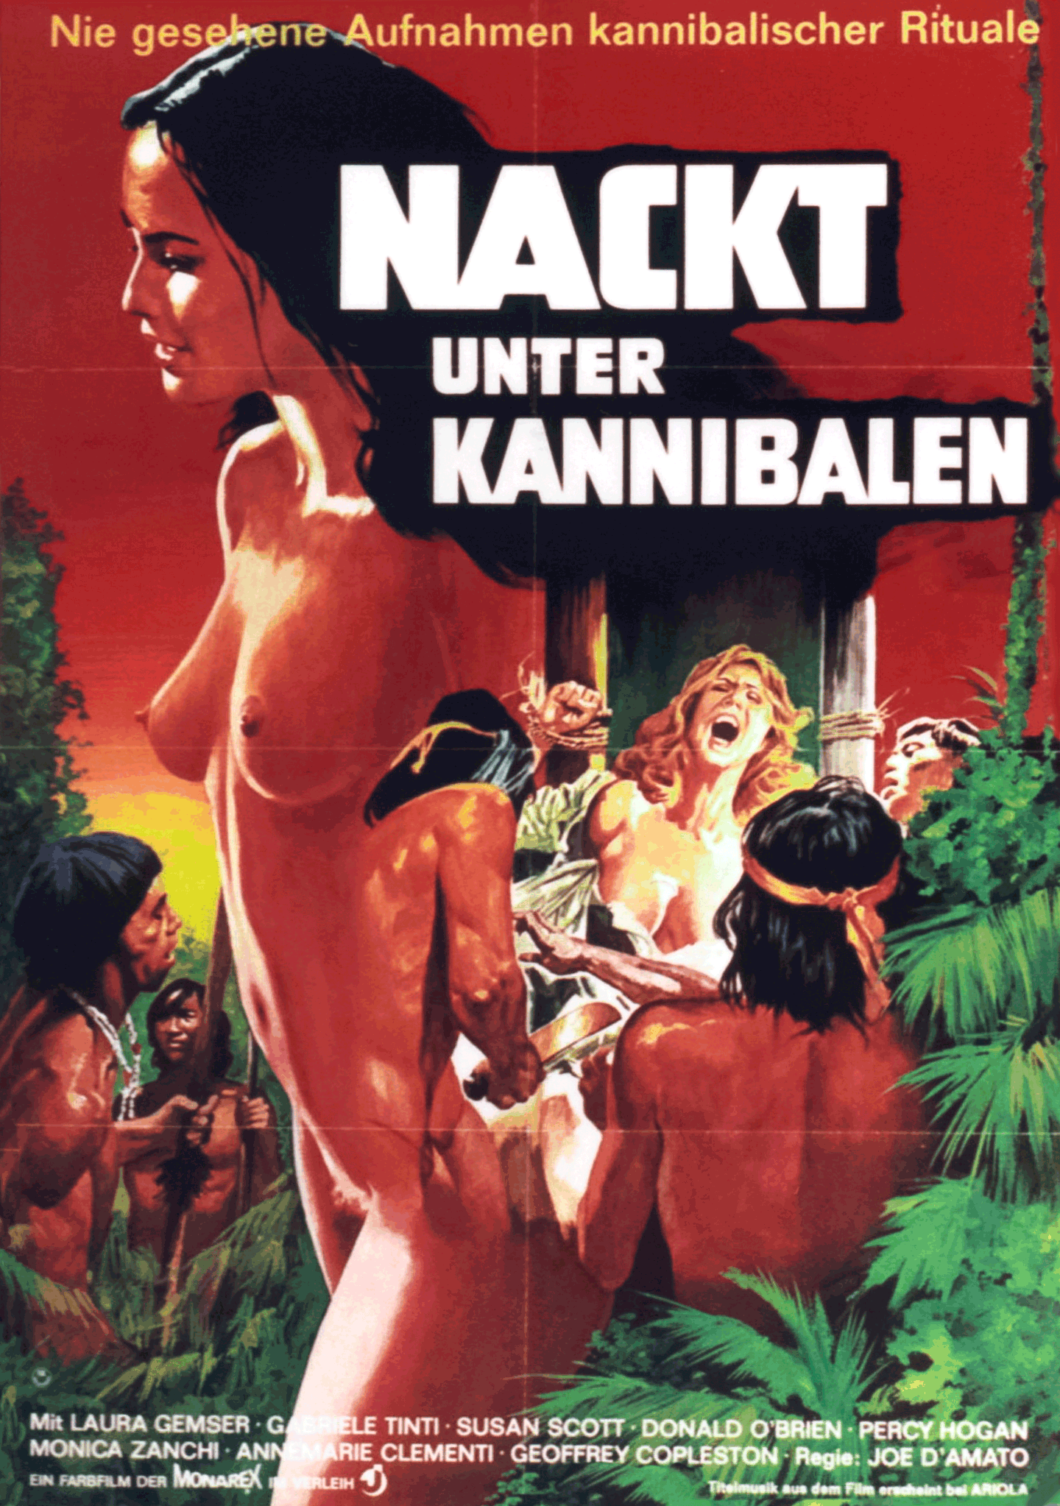 6 Cannibal Themed B-Movie Posters